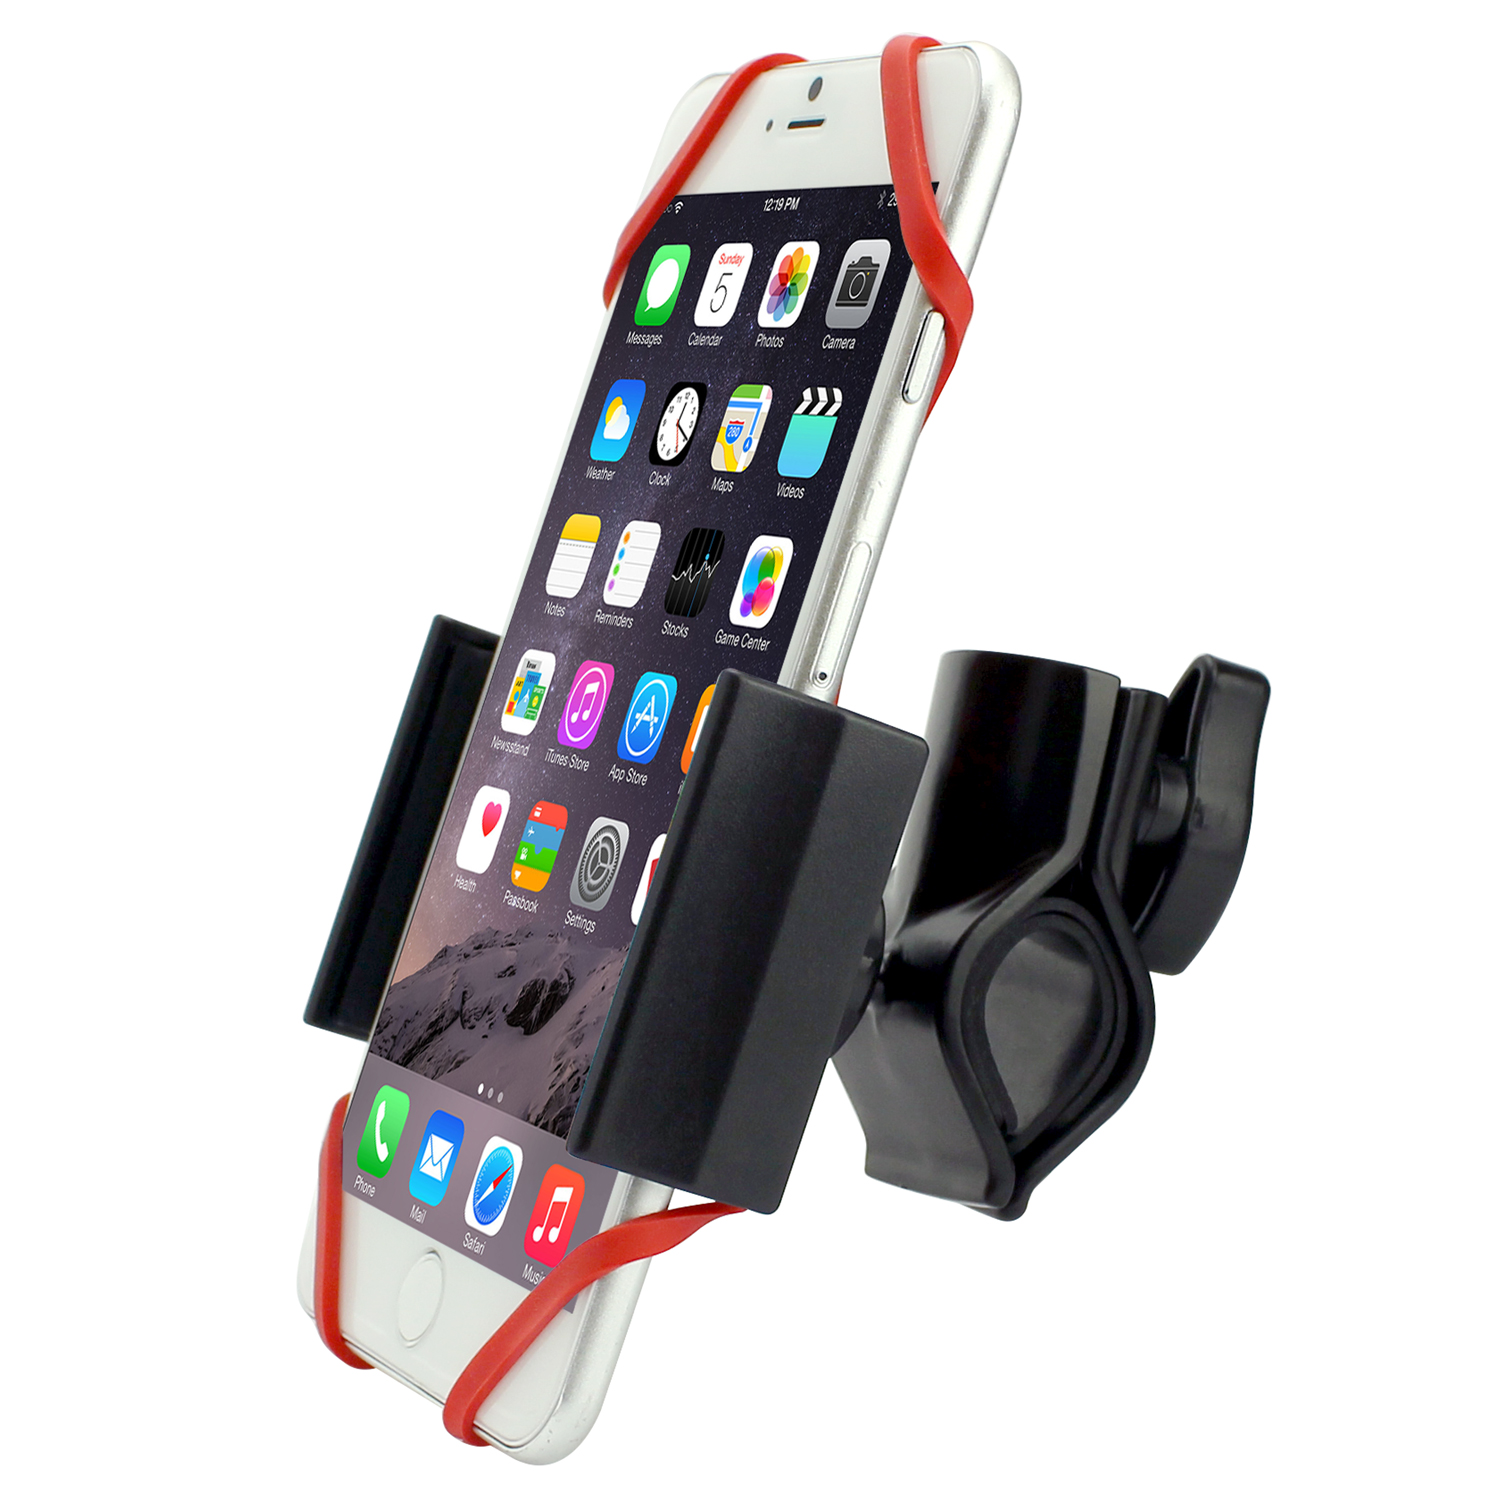 Asus PadFone X mini Bike Phone Mount Adjustable Black